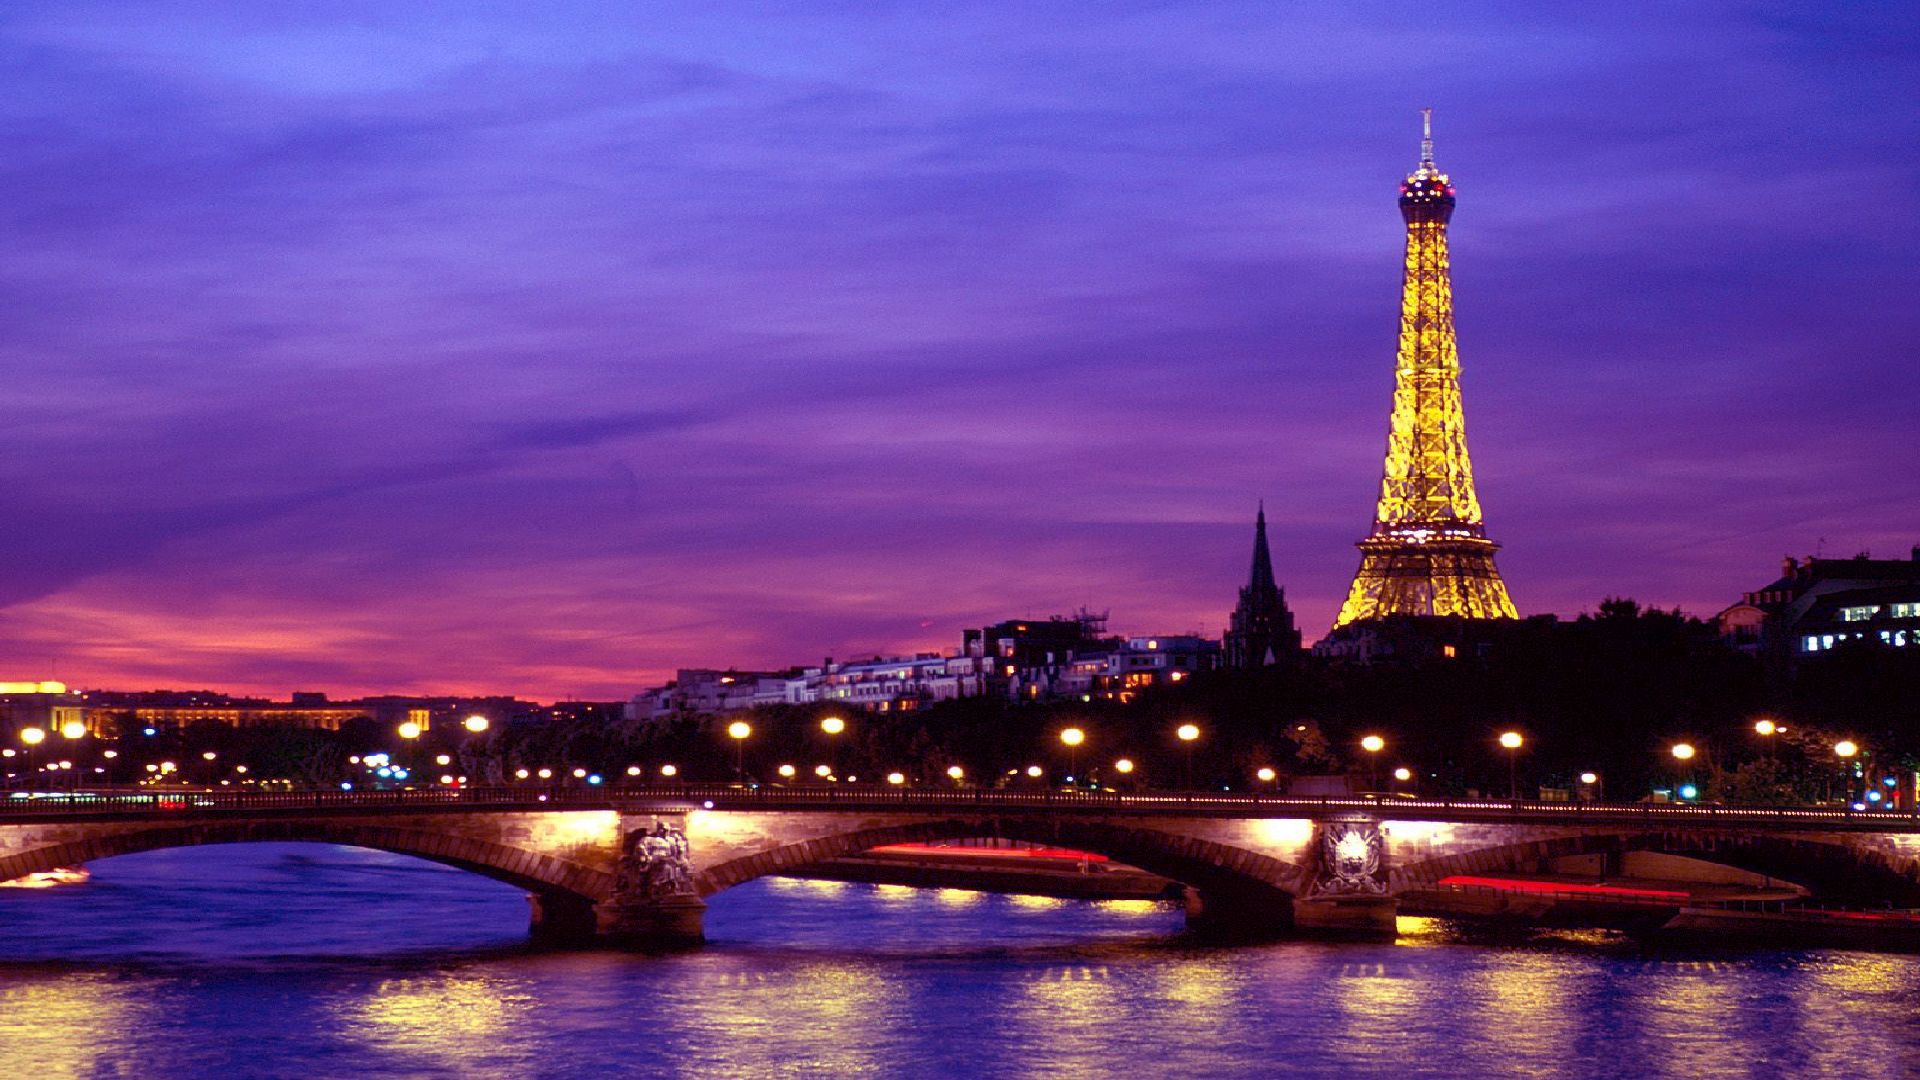 Eiffel tower at night hd wallpaper background image - Paris eiffel tower desktop wallpaper ...